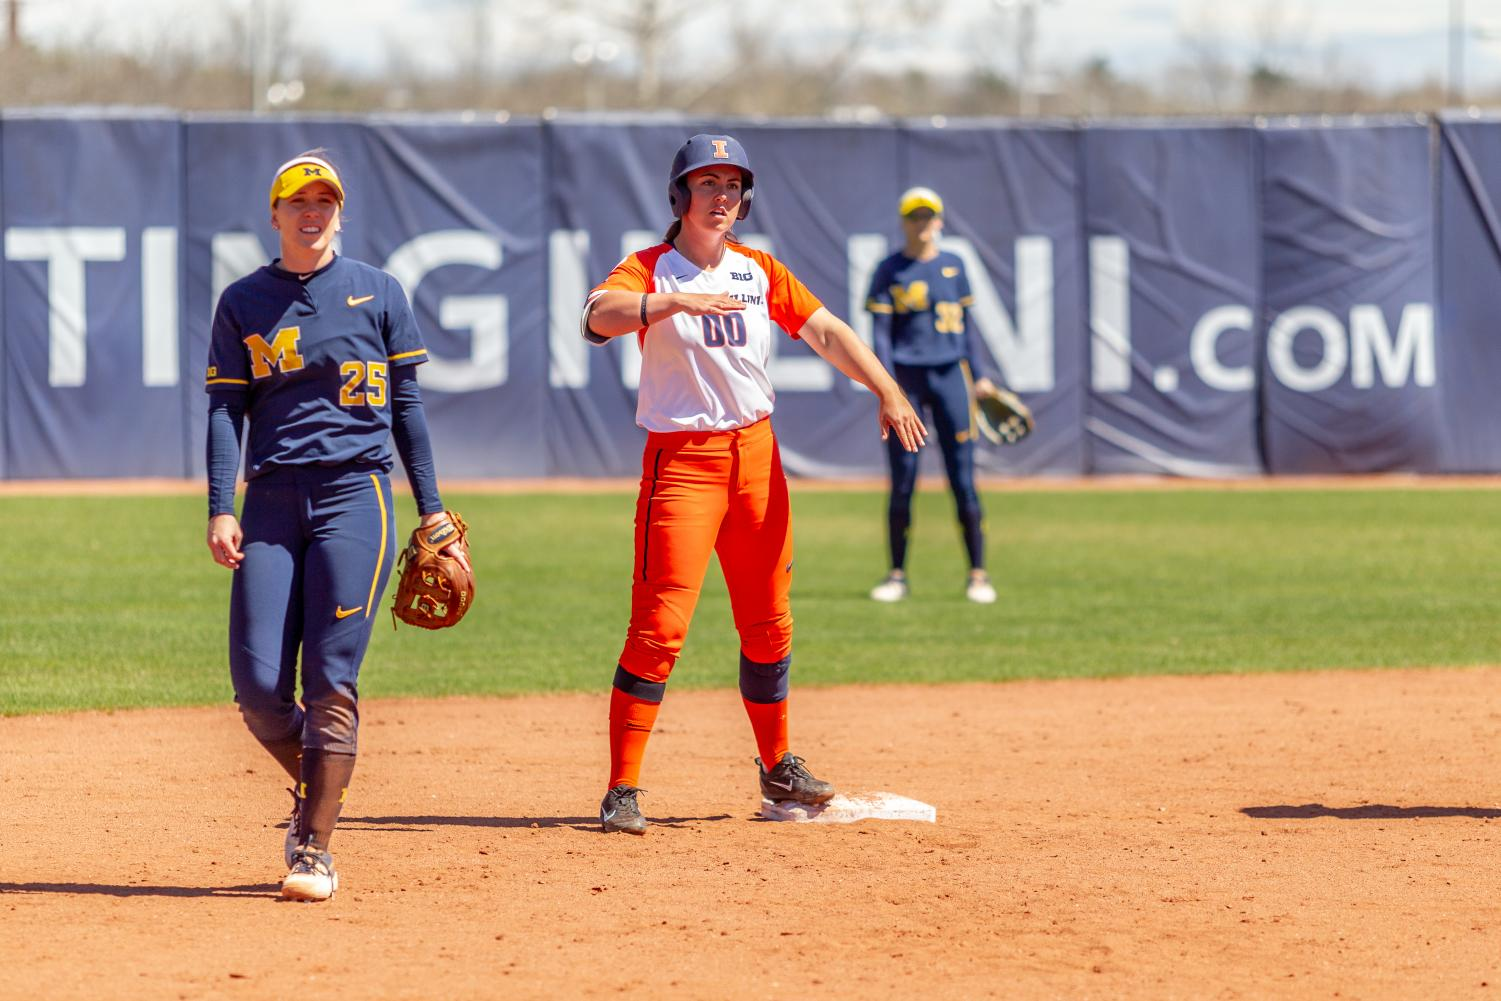 Veronica Ruelius stands at second base during a game against Michigan at Eichelberger Field on April 20. The Illini lost 8-9.